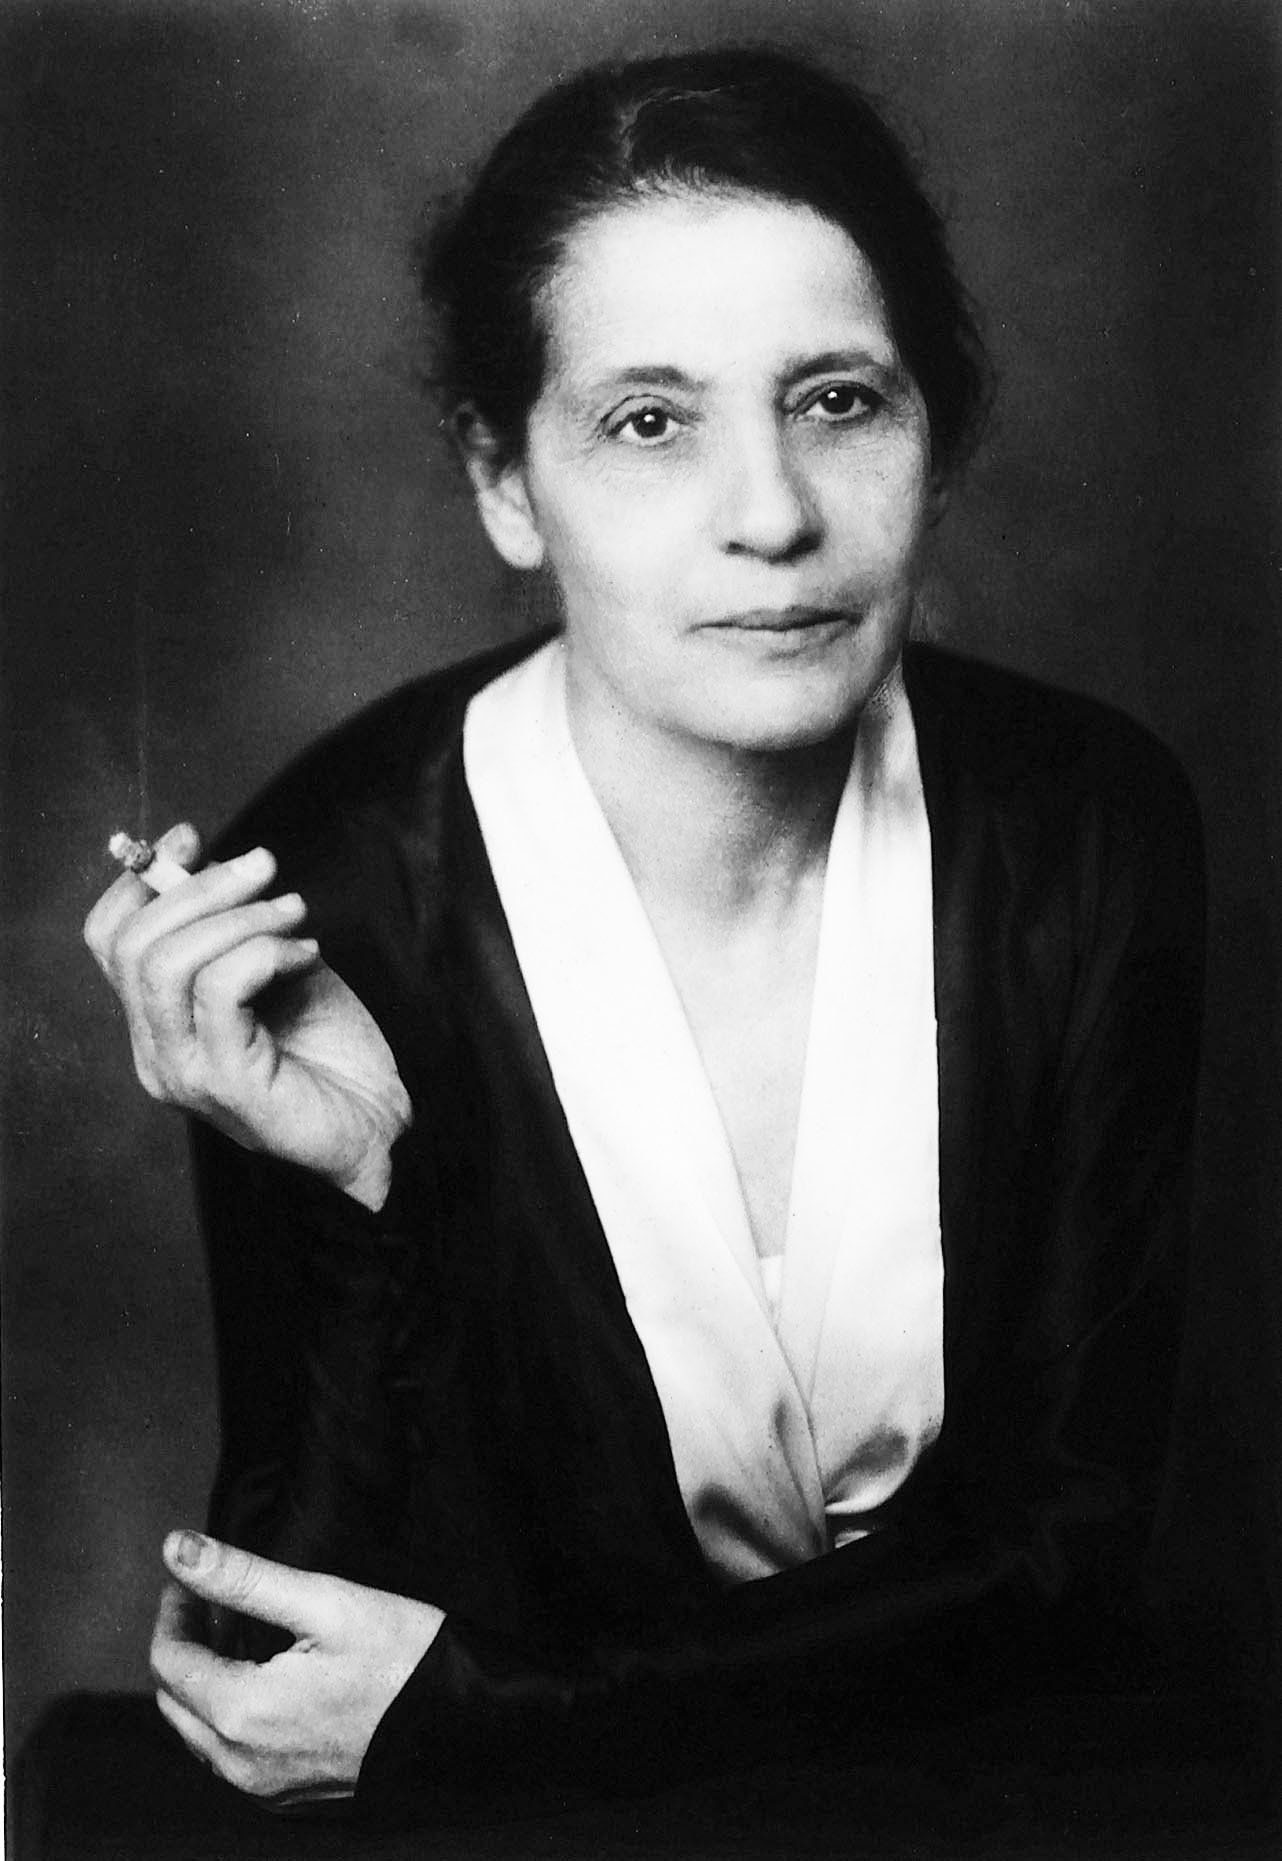 Lise Meitner; nuclear physicist. Awarded the Nobel prize for her work leading to the discovery of nuclear fission - when women still weren't allowed to attend institutions of higher level education.